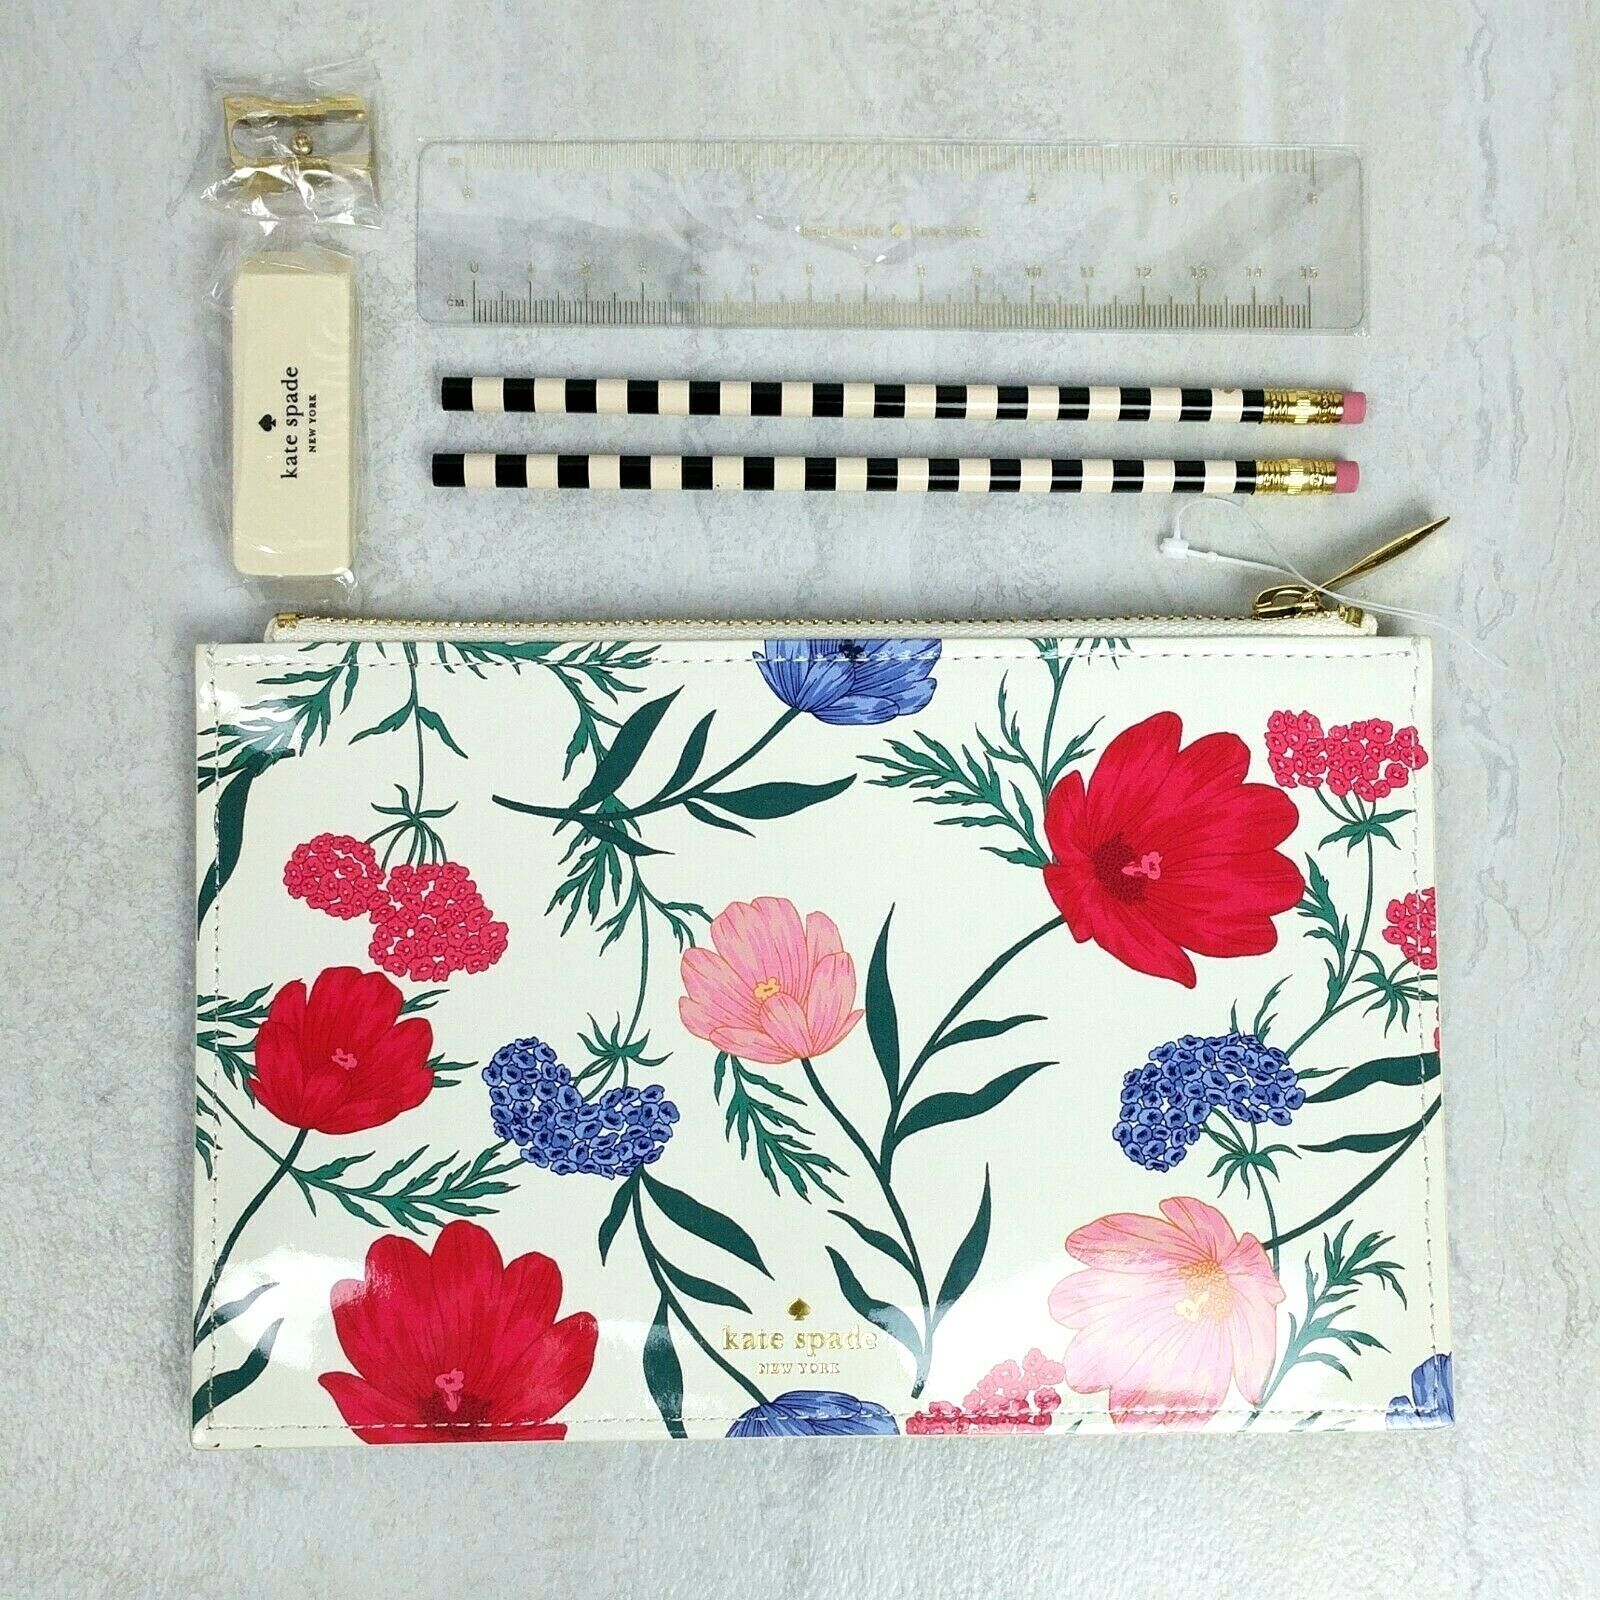 NEW Kate Spade New York Blossom Pencil Pouch Case Floral Flower Pink Red Ruler - $29.99